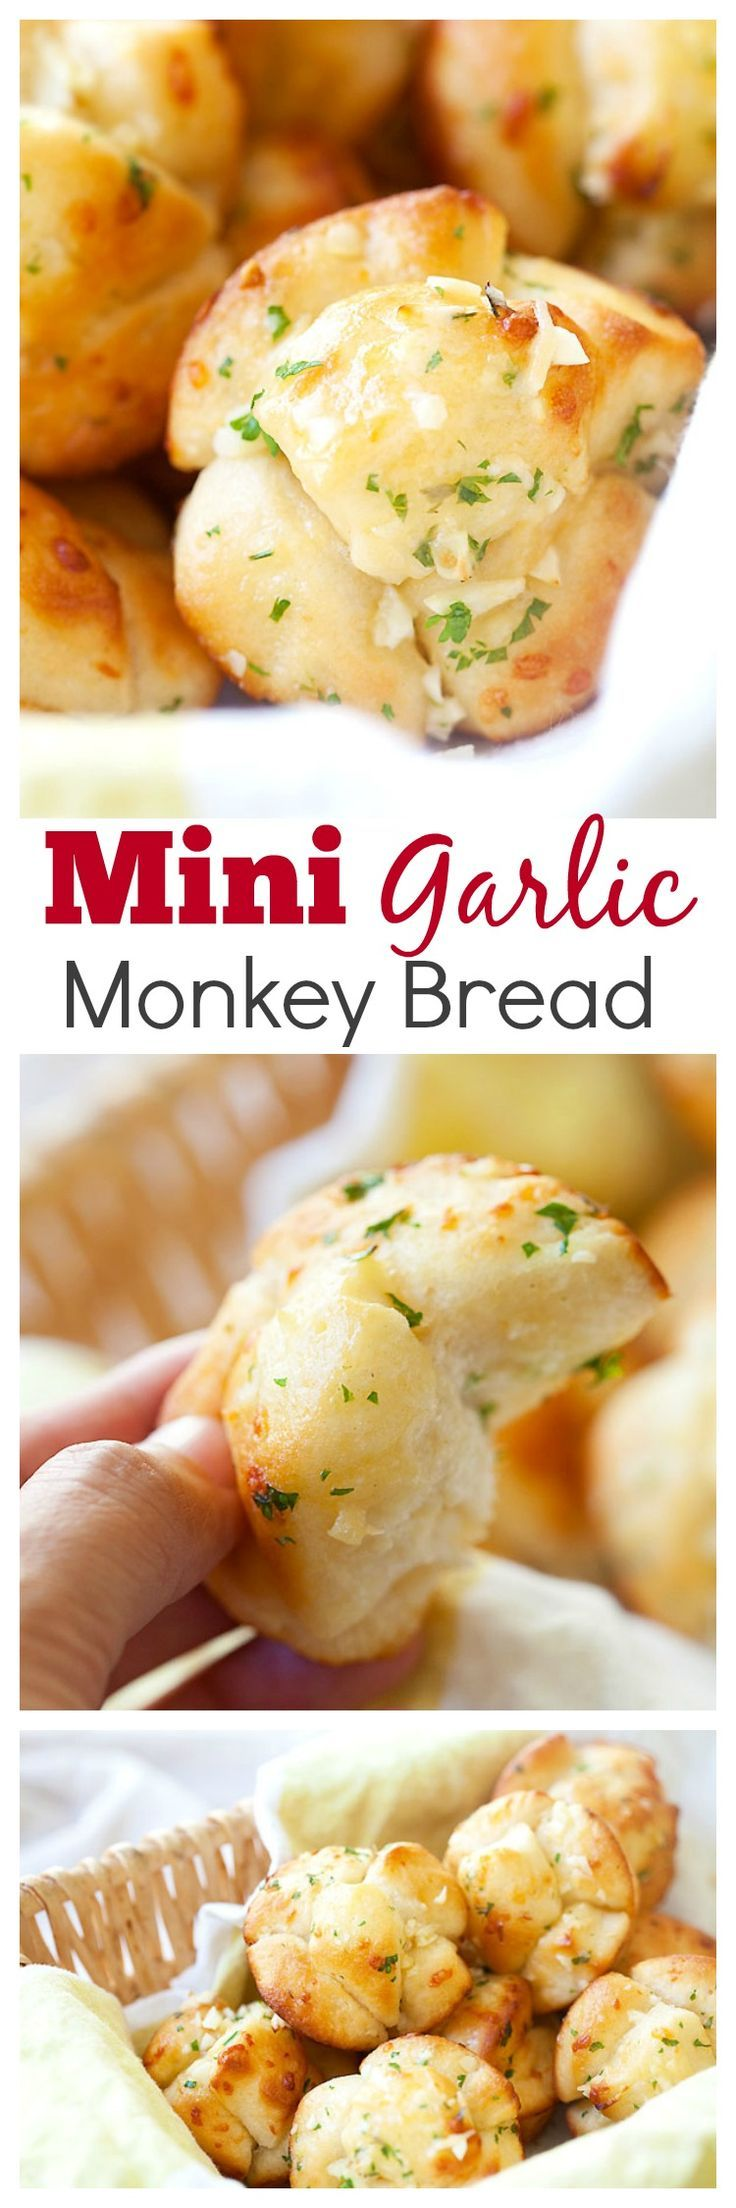 #xmas #brunch Mini garlic monkey bread – best and easiest monkey bread takes 20 mins! Use Pillsbury biscuits dough and garlic herb butter | rasamalaysia.com